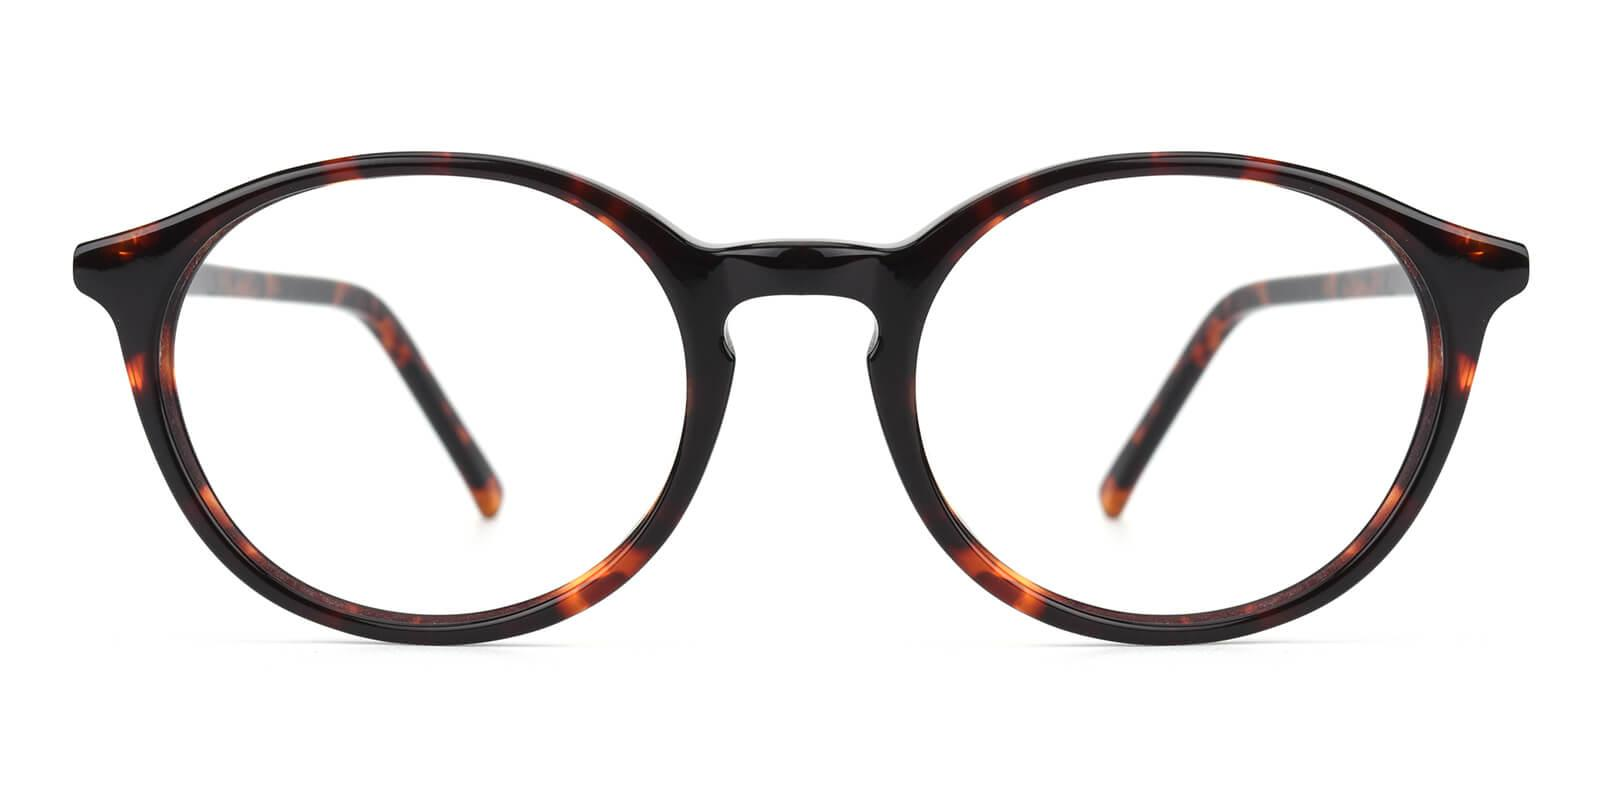 Herbel-Tortoise-Round-Acetate-Eyeglasses-additional2